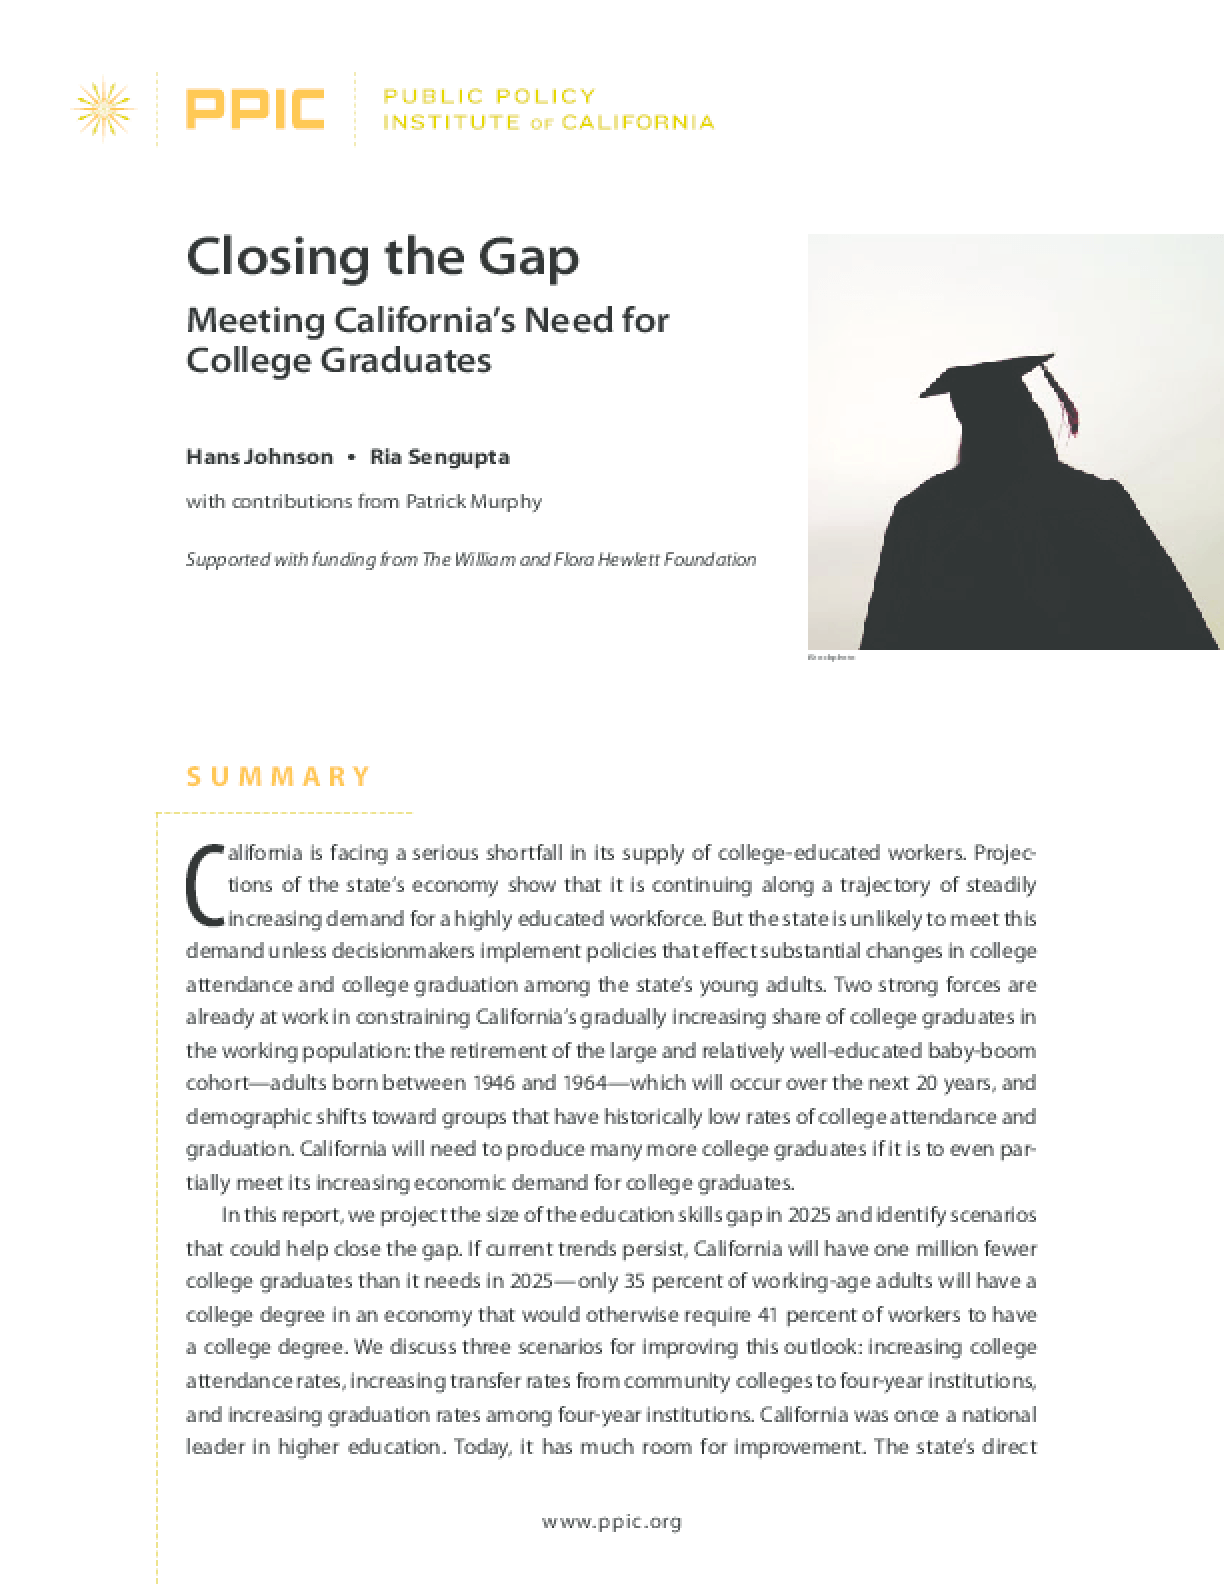 Closing the Gap: Meeting California's Need for College Graduates